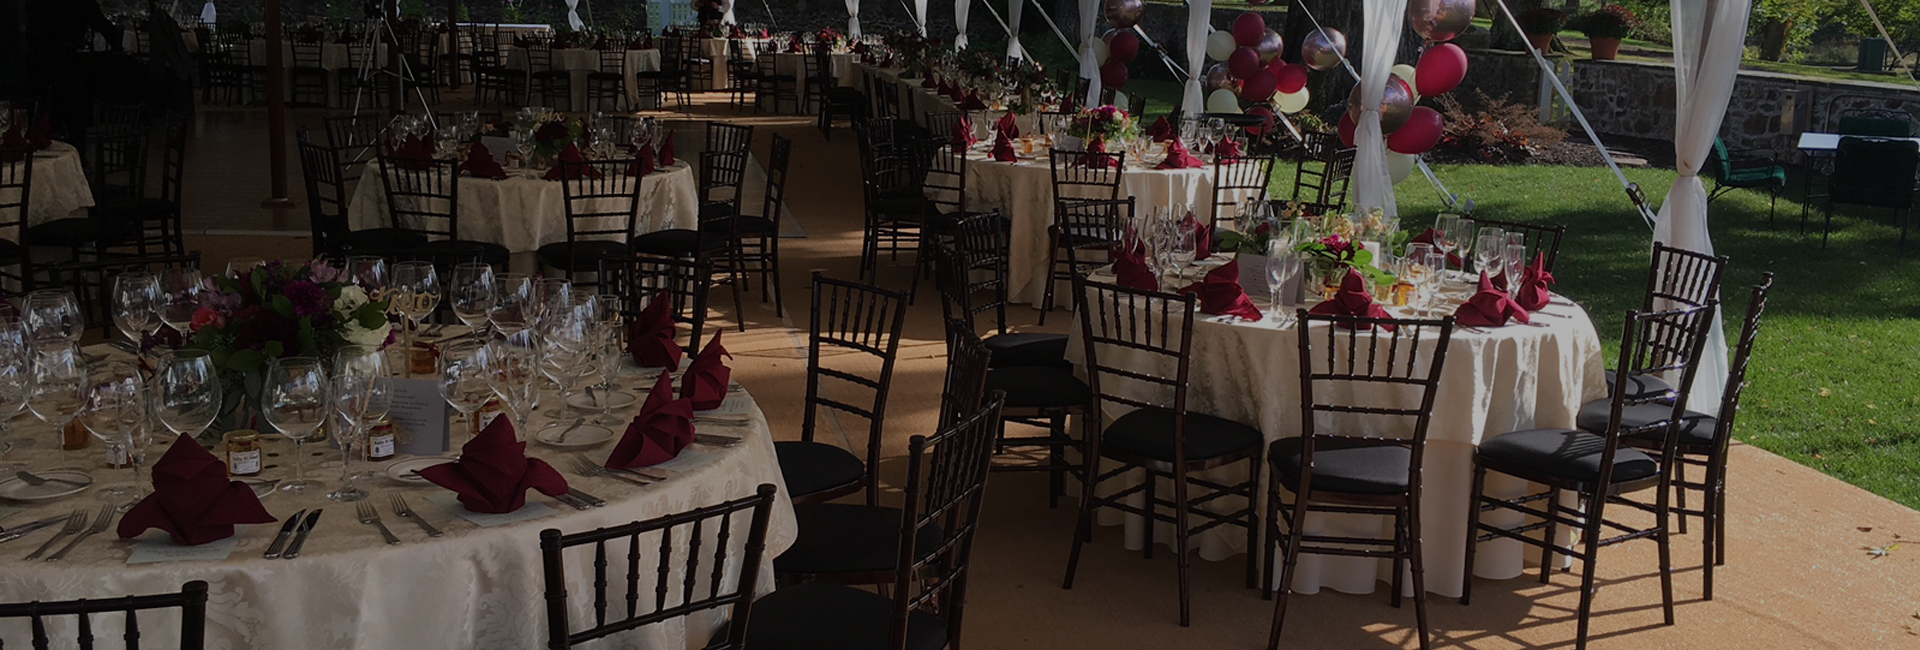 tables & chairs with place setting